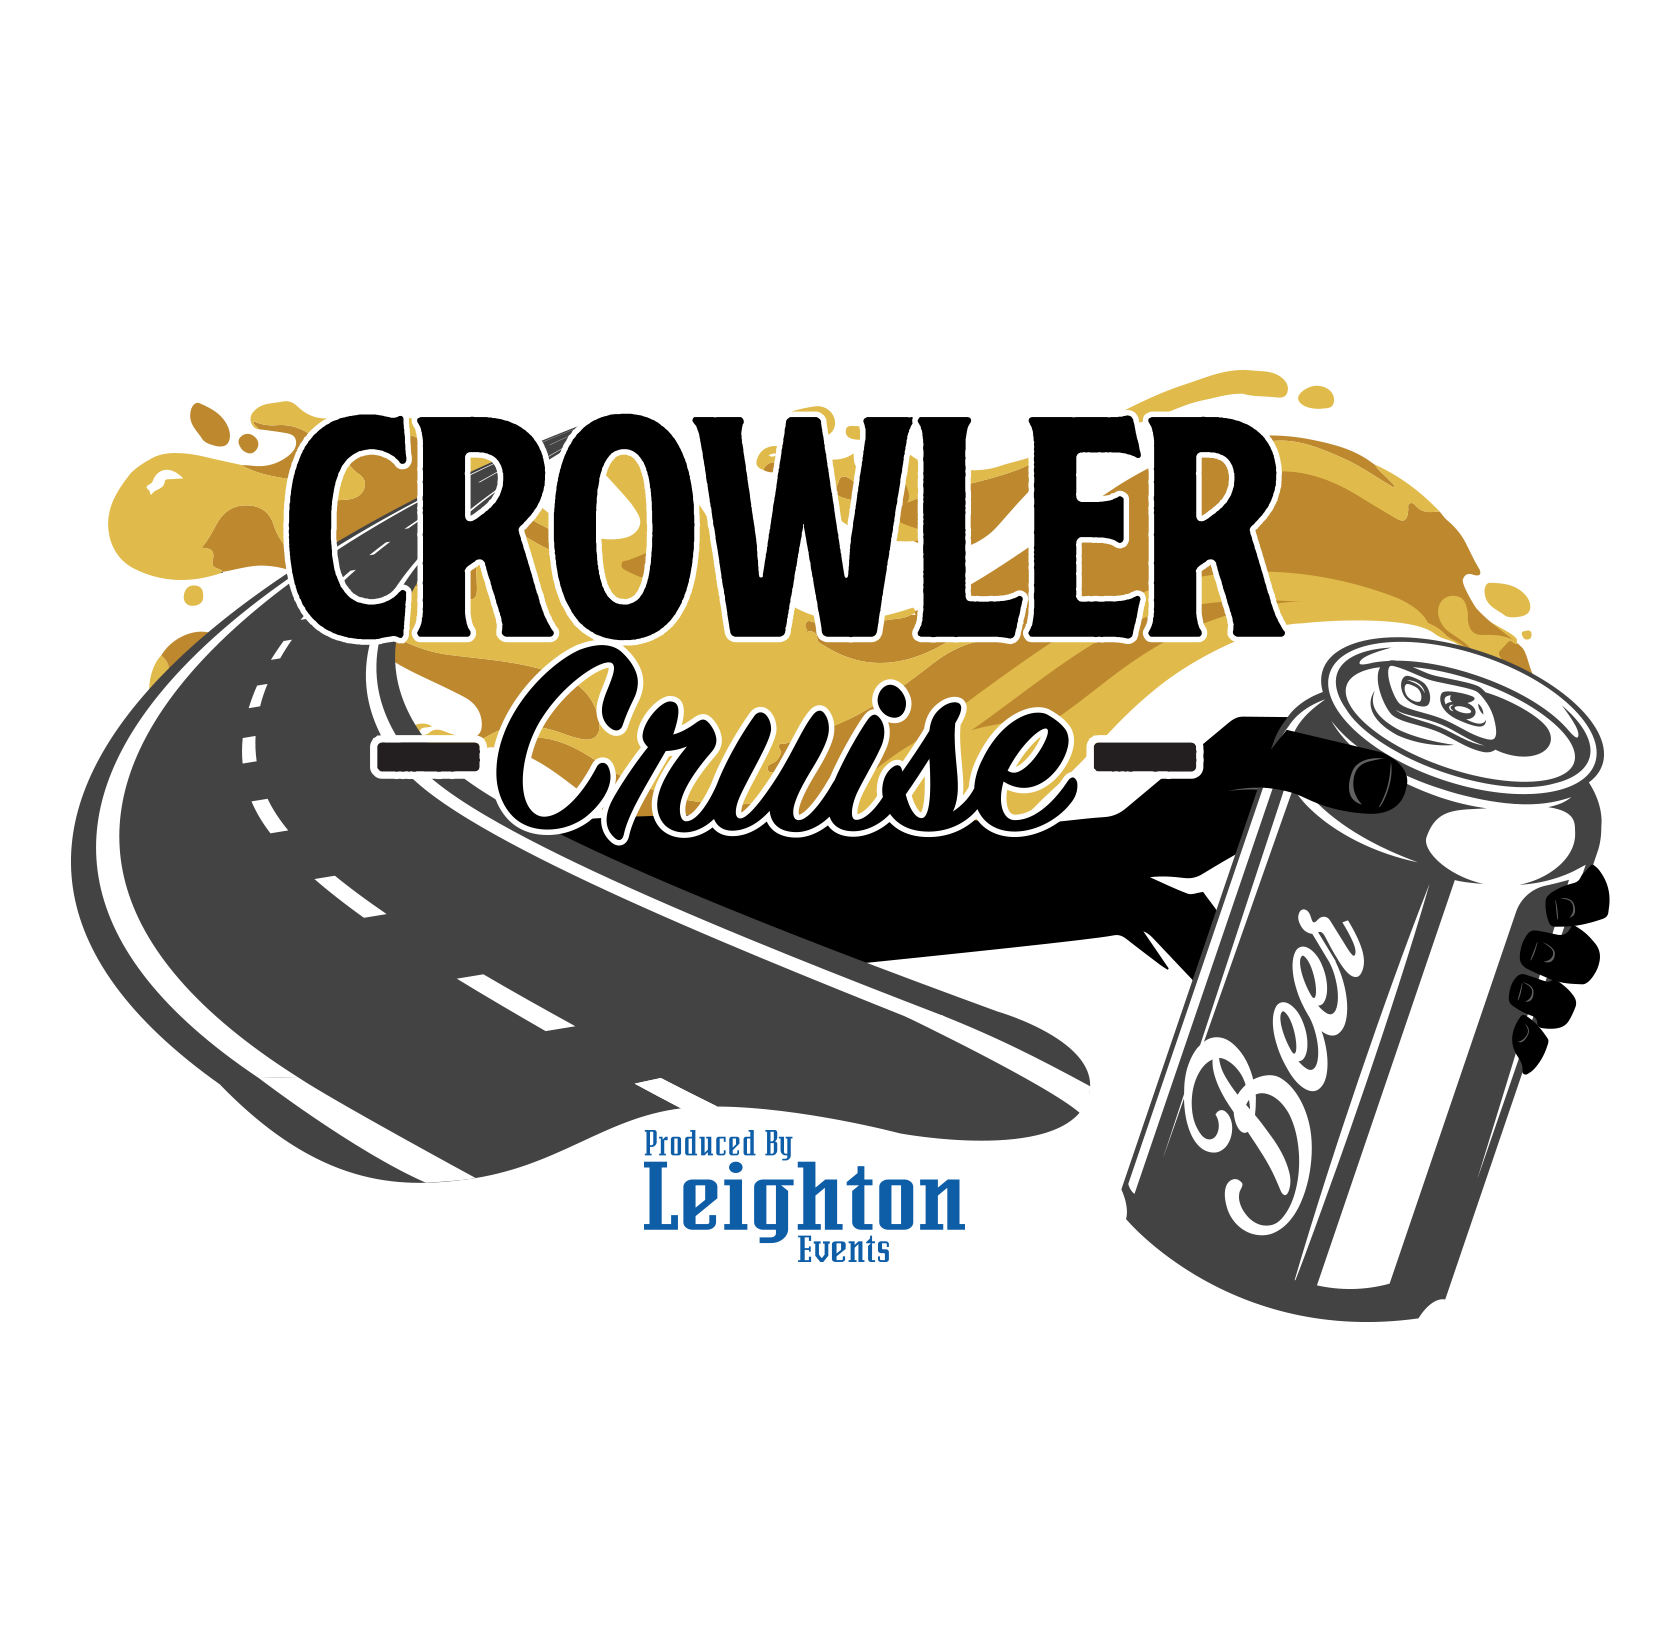 Crowler Cruise